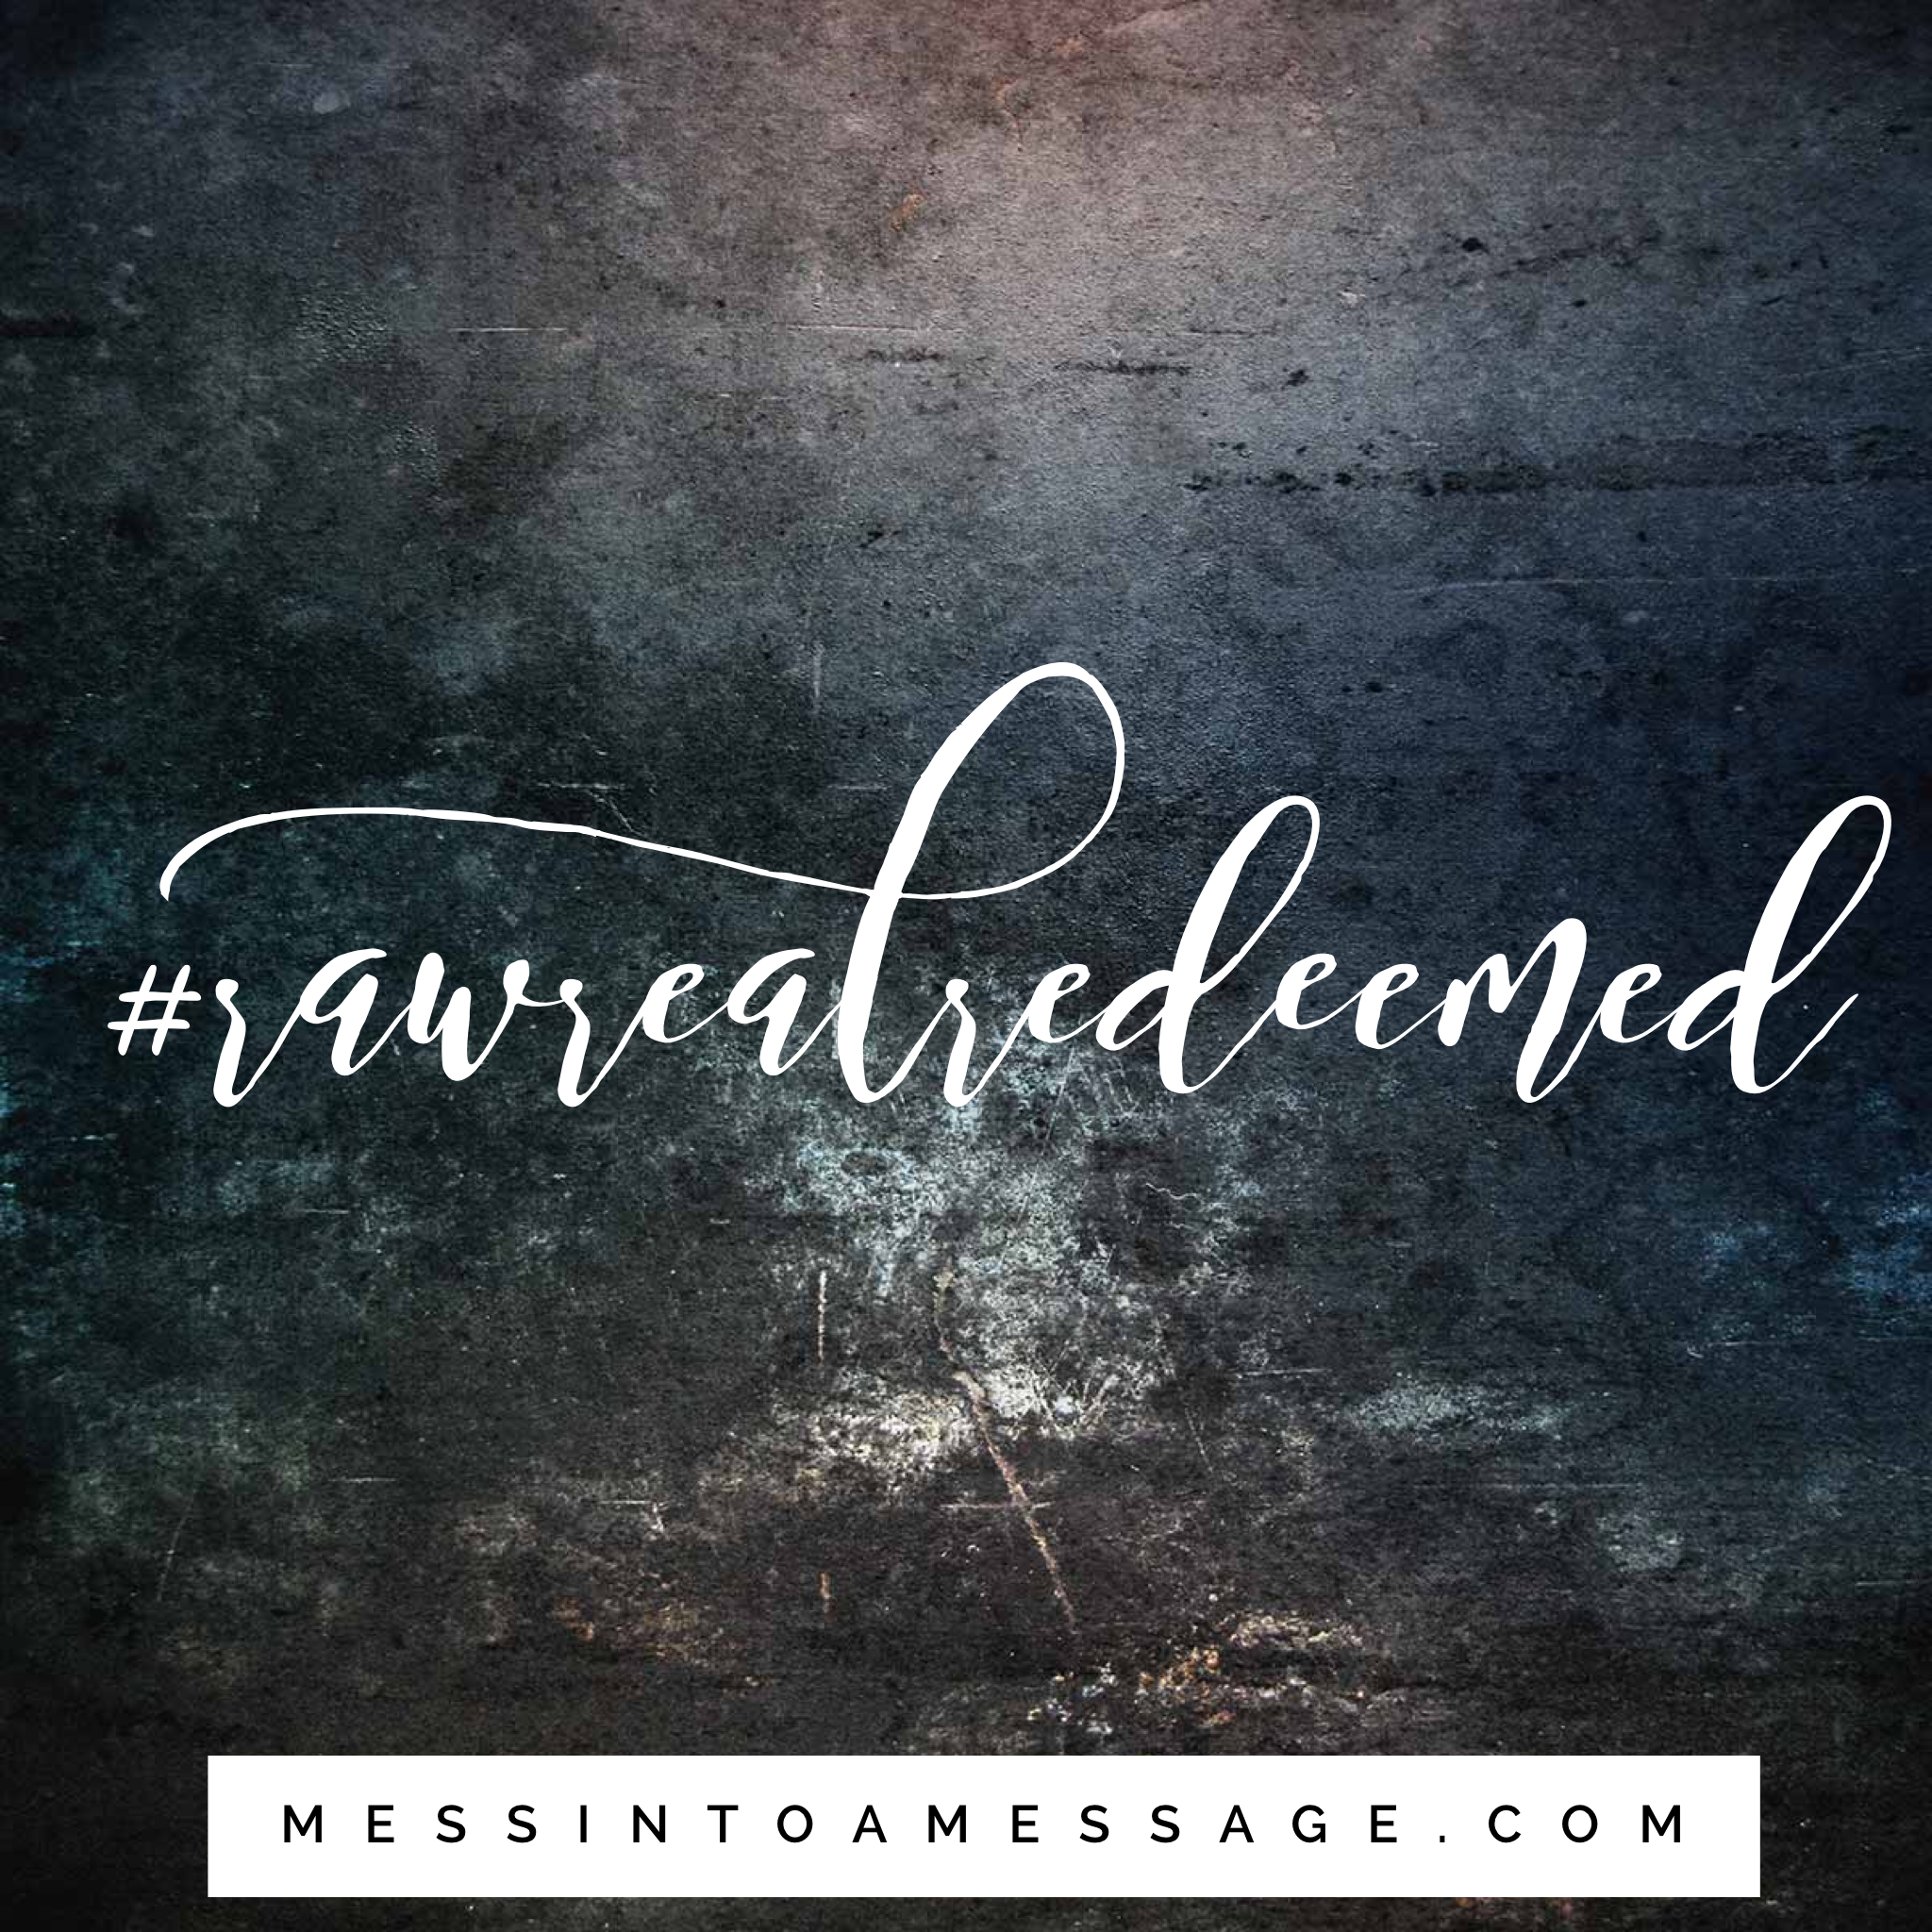 Raw, real, redeemed.